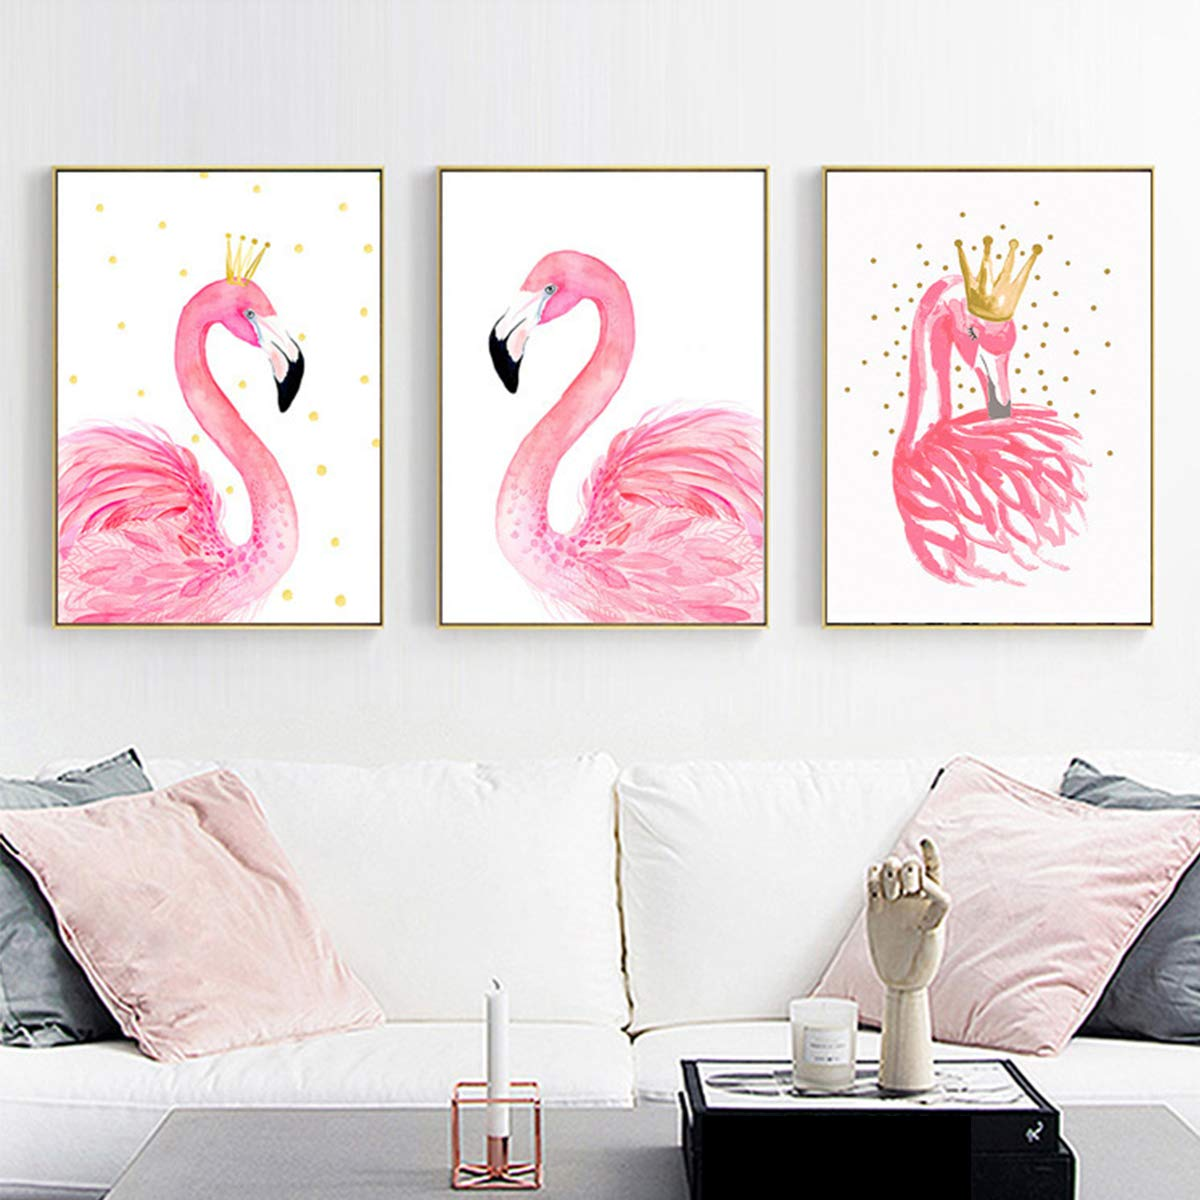 queenland 3 Pieces Pink Flamingos Paintings Picture Prints on Canvas Walls Decoration, Modern Wall Paintings Kid's Room Pincess Bedroom Home Office Decor Wall Art (Unframed,15.7x19.7 inch)